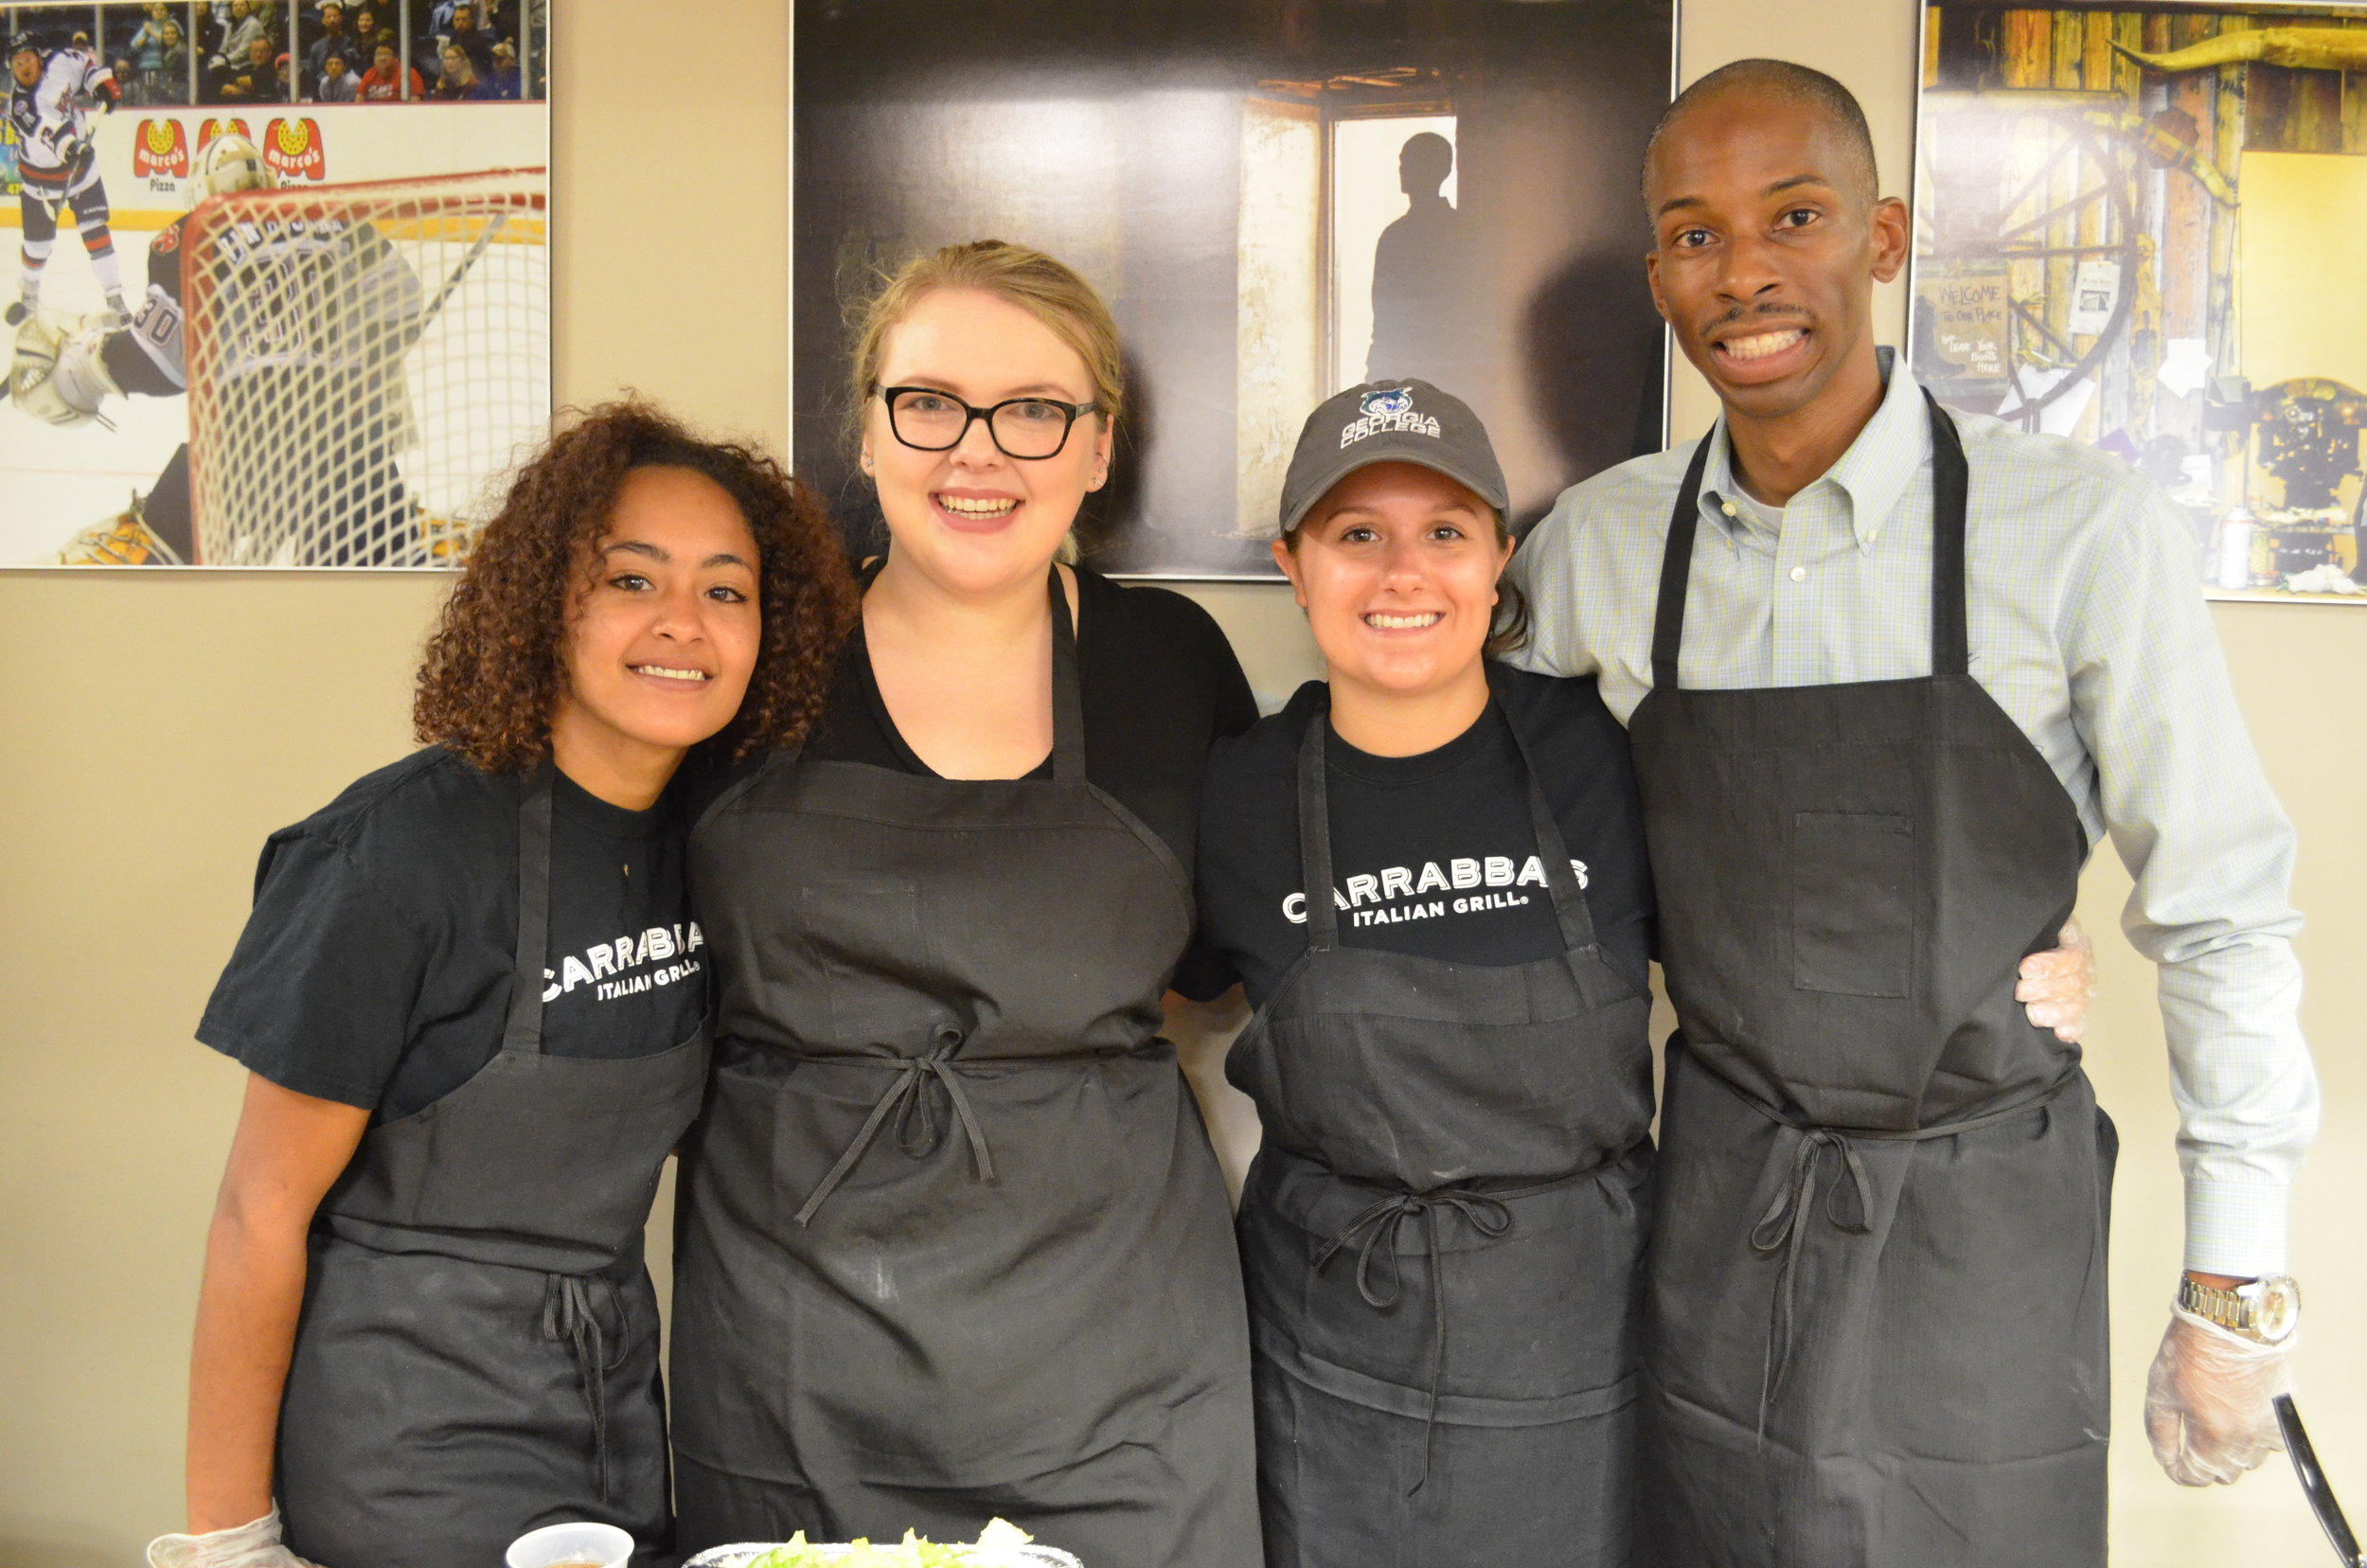 Carrabba's Italian Grill not only served us wonderful food but they served our campers with kind smiles.